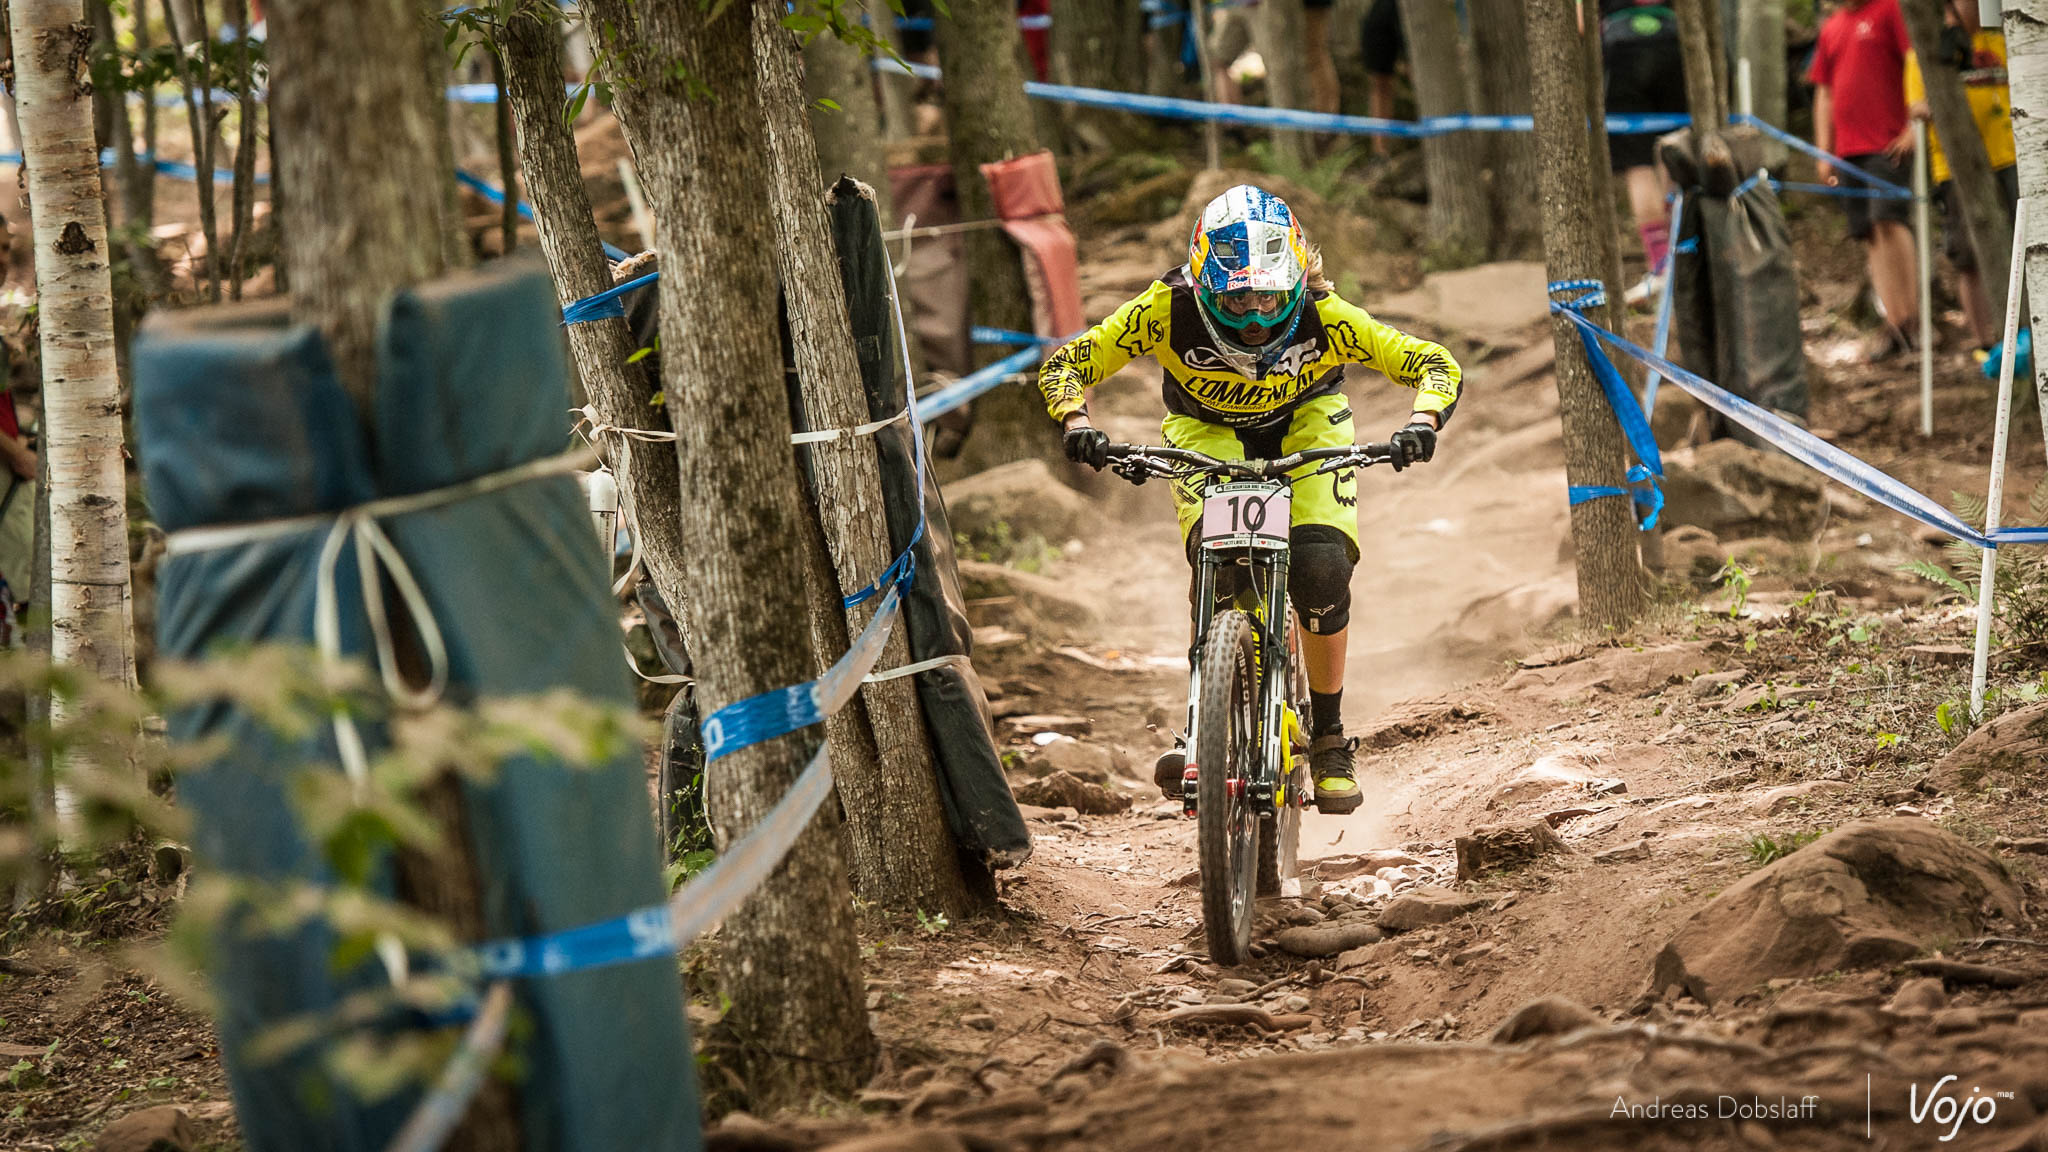 World_Cup_DH_men_homme_Windham_2015_Copyright_Dobslaff_VojoMag-1